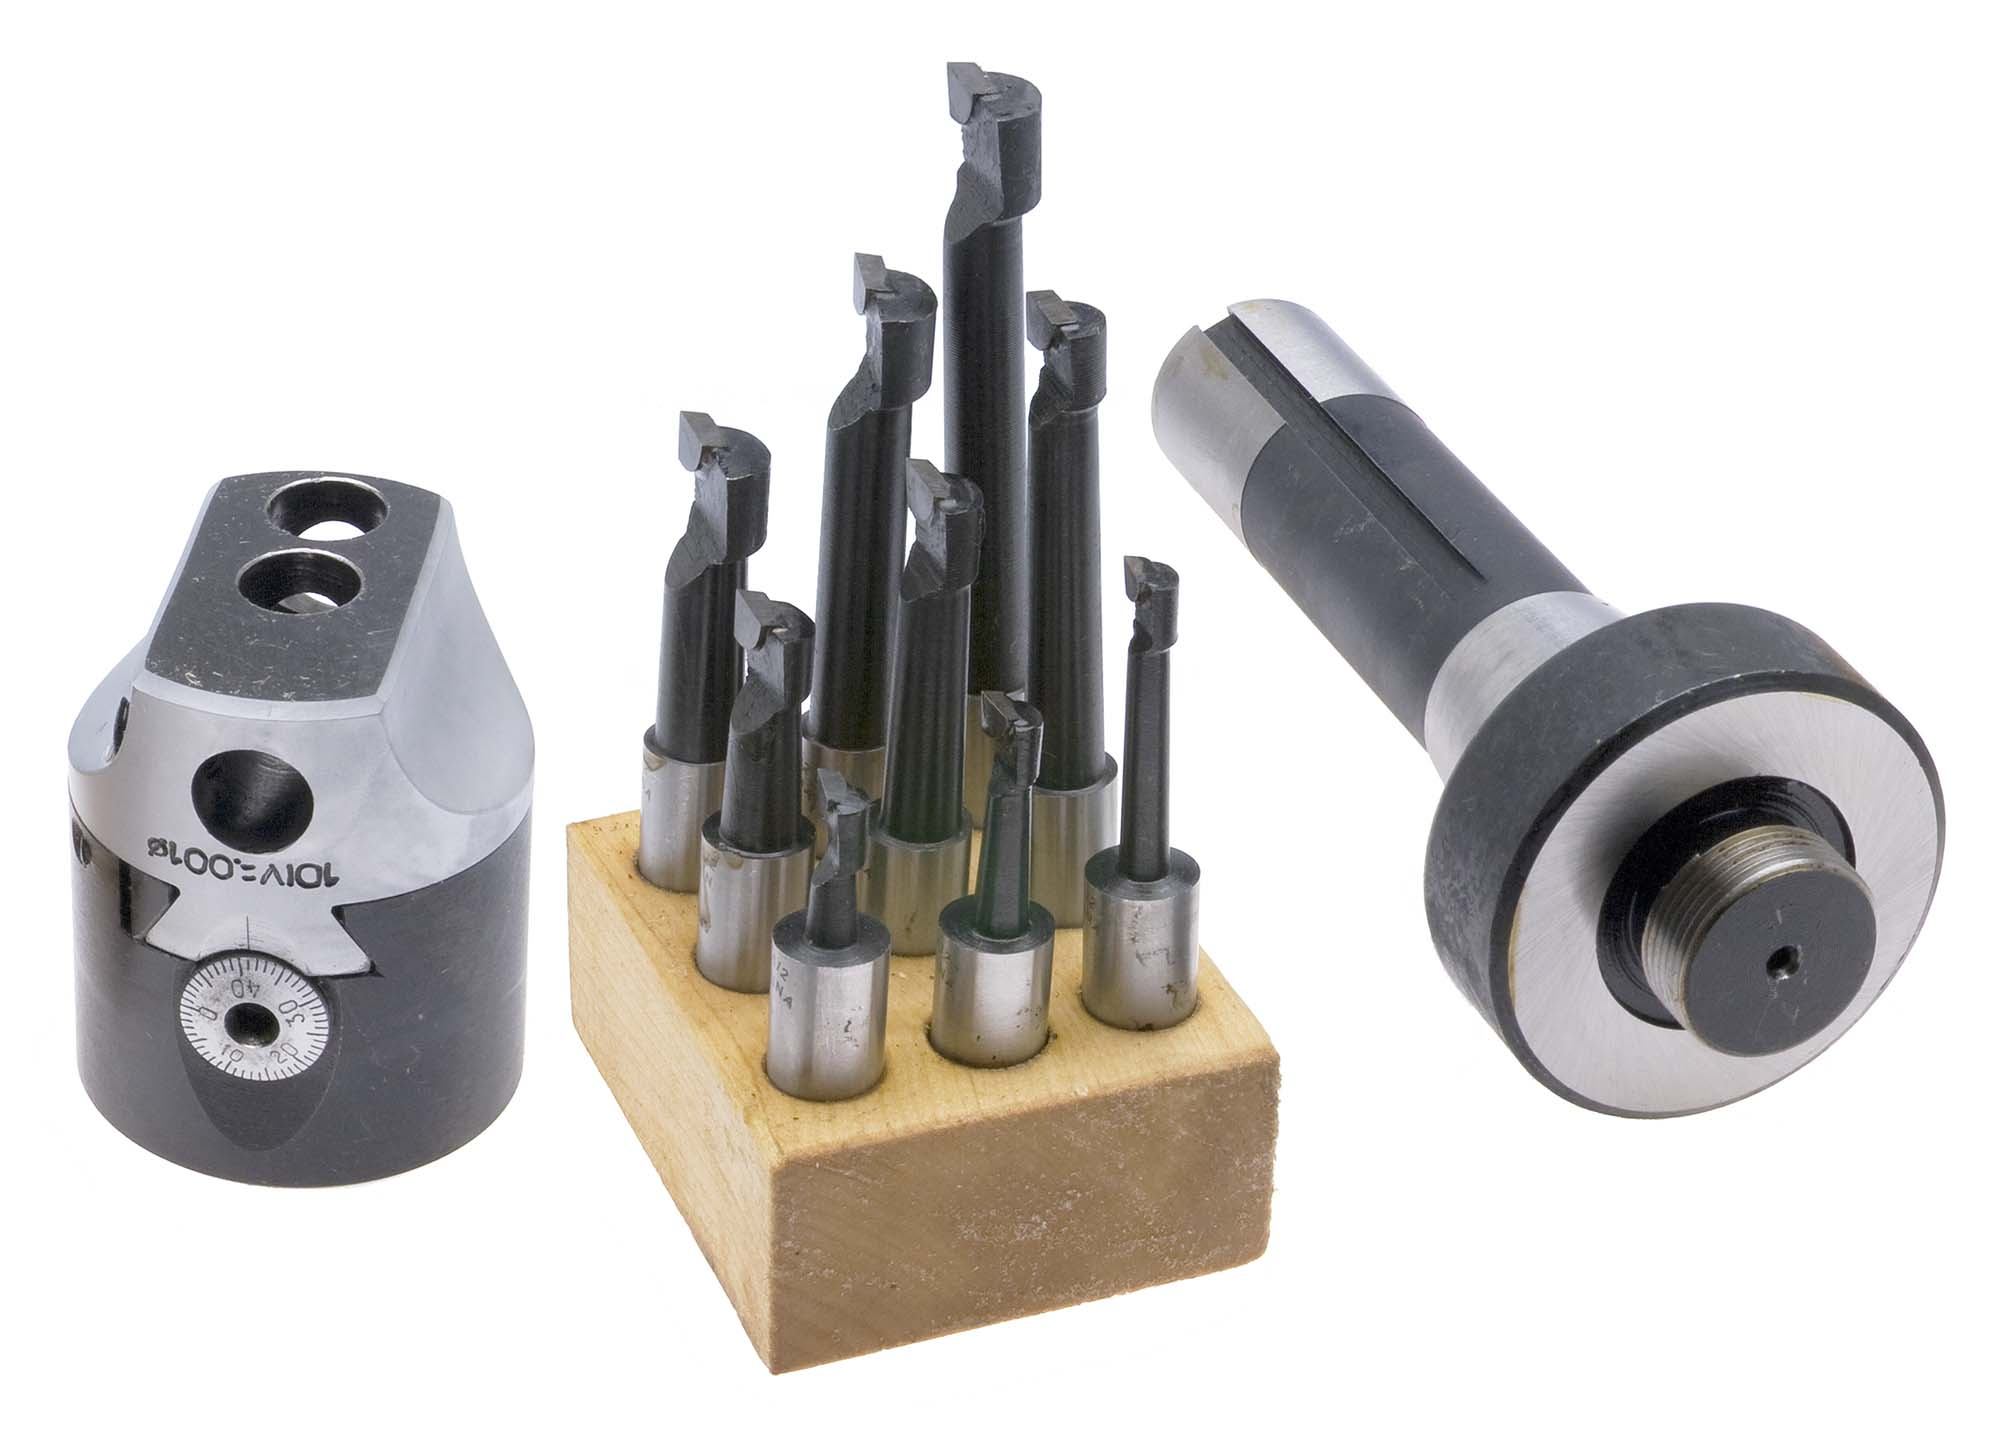 "BHS-32  Boring Head Set, 3"" Head plus 3/4"" Straight Shank and 3/4"" Carbide Tip Boring Bar Set"